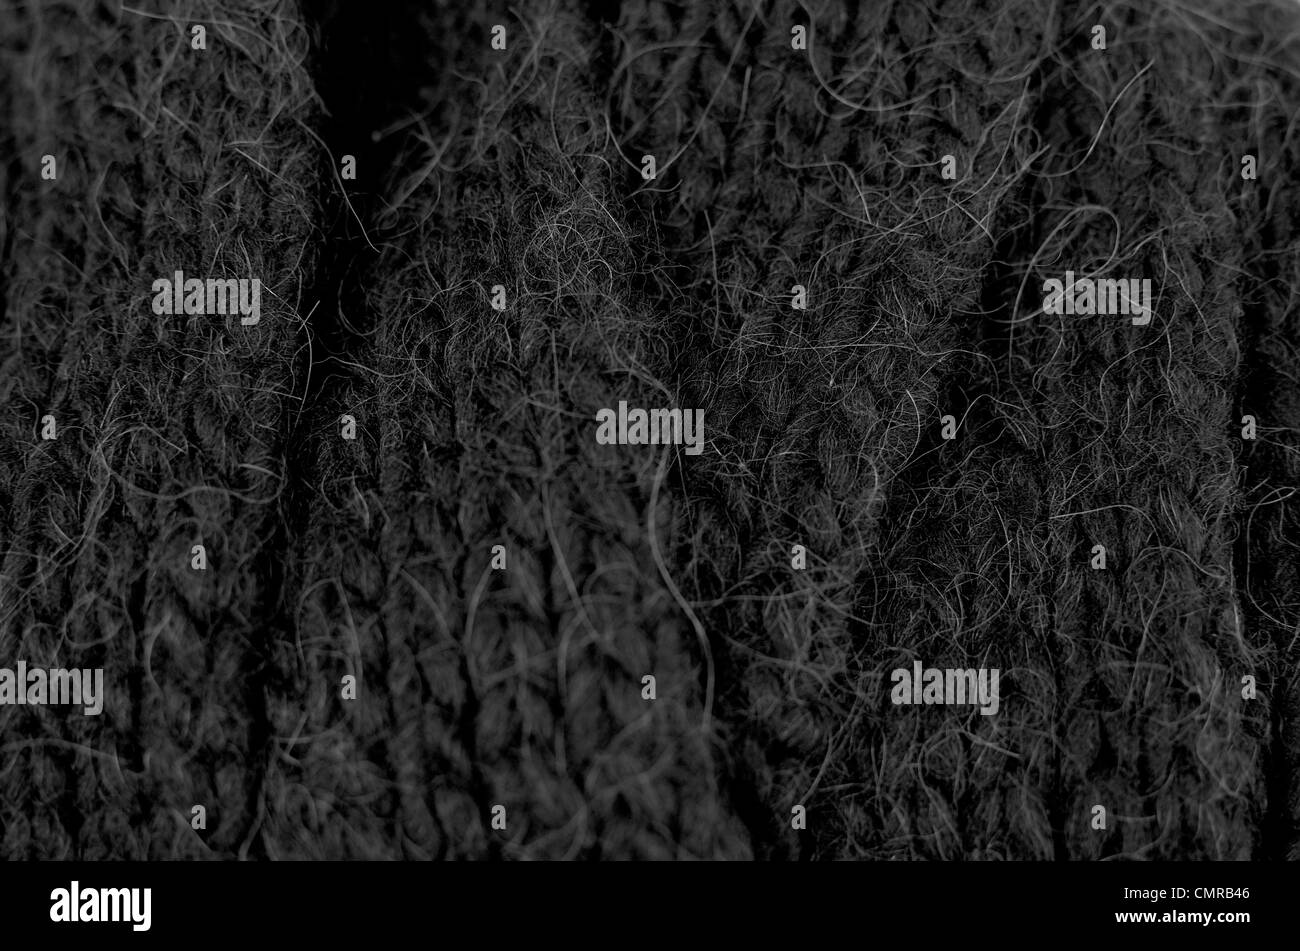 Rough heavy wool knitted and layered texture. Black and white photo. Select focus. - Stock Image